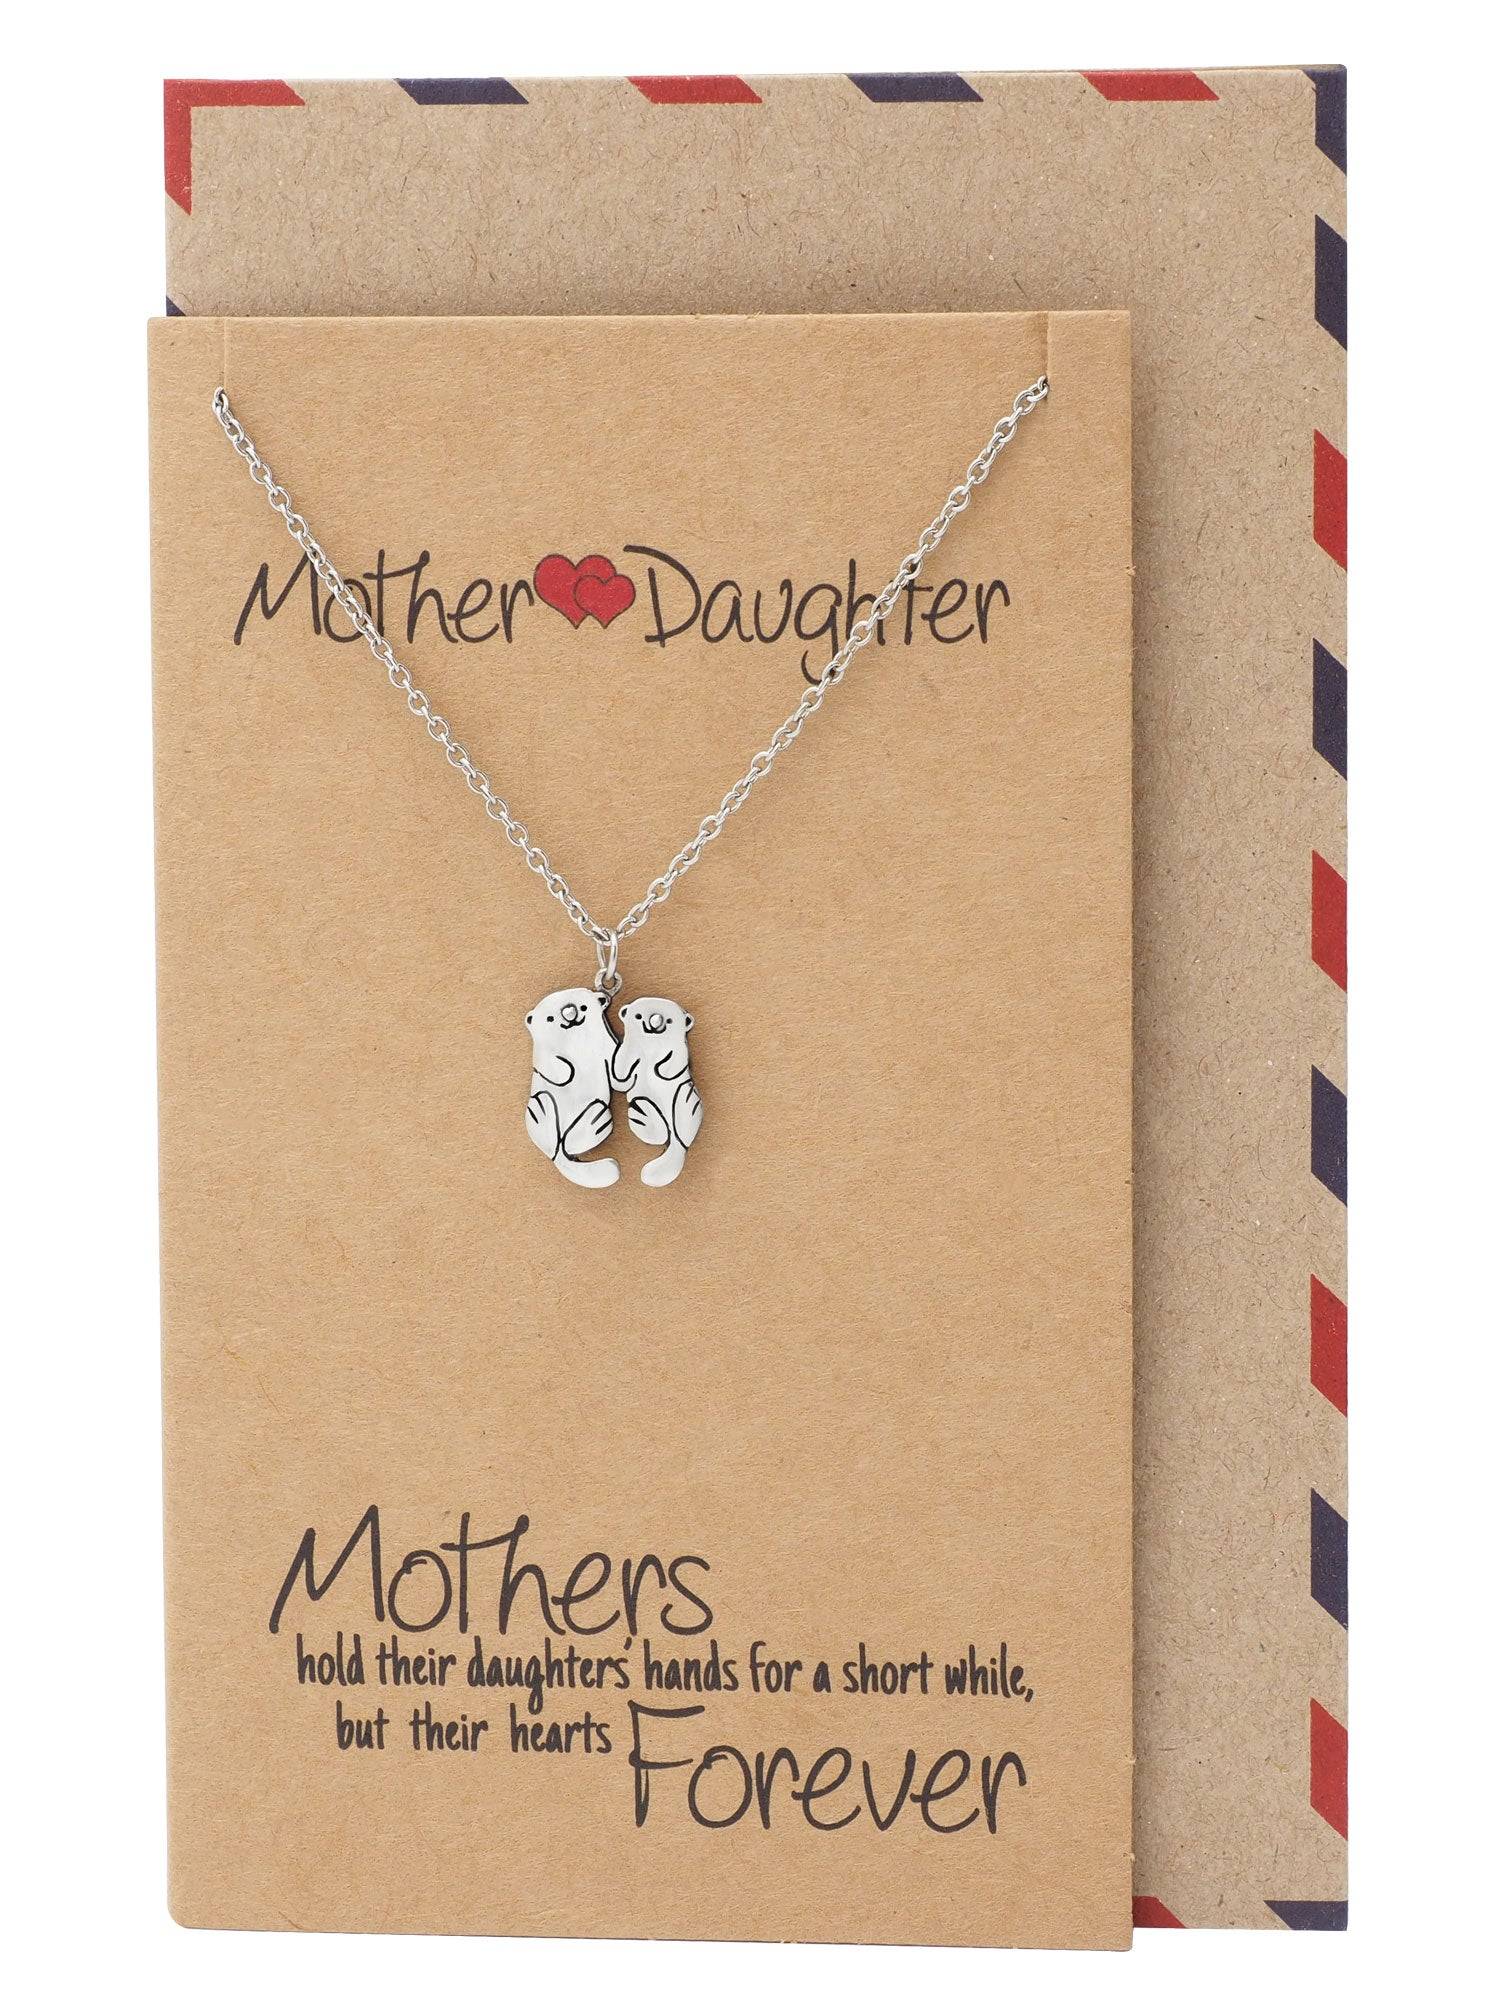 Adriana Mother and Daughter Otter Necklace with Inspirational Quote, Gifts for Mom - Quan Jewelry